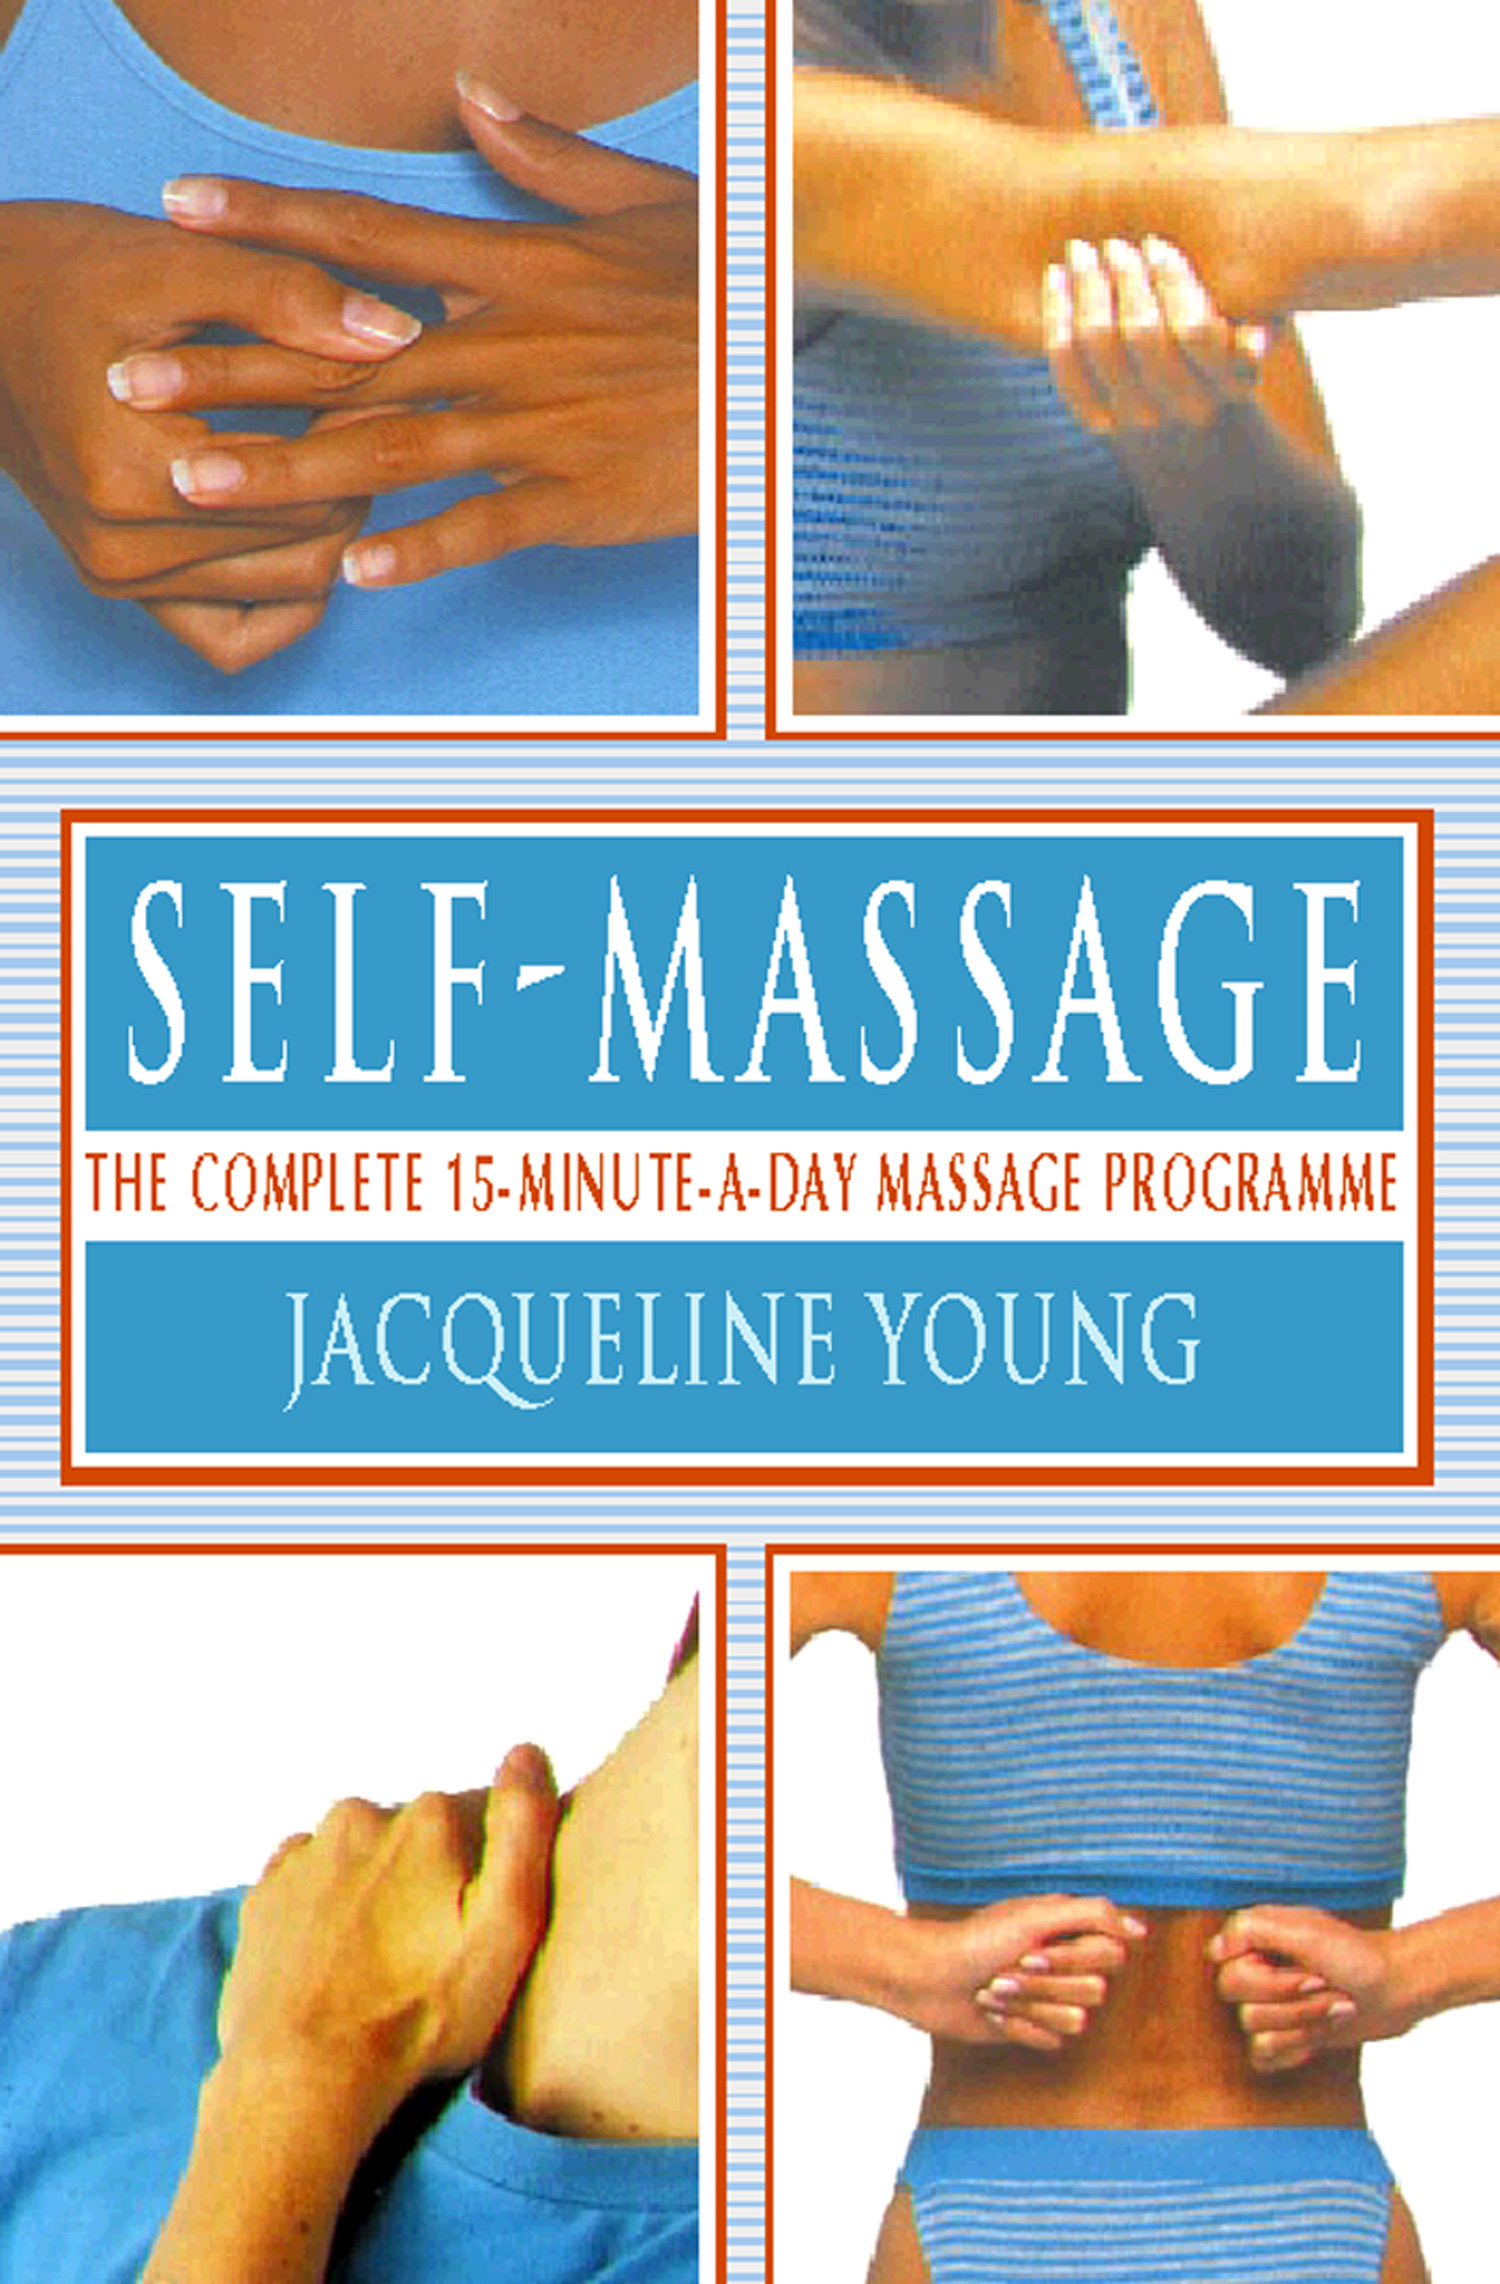 Self Massage: The complete 15-minute-a-day massage programme